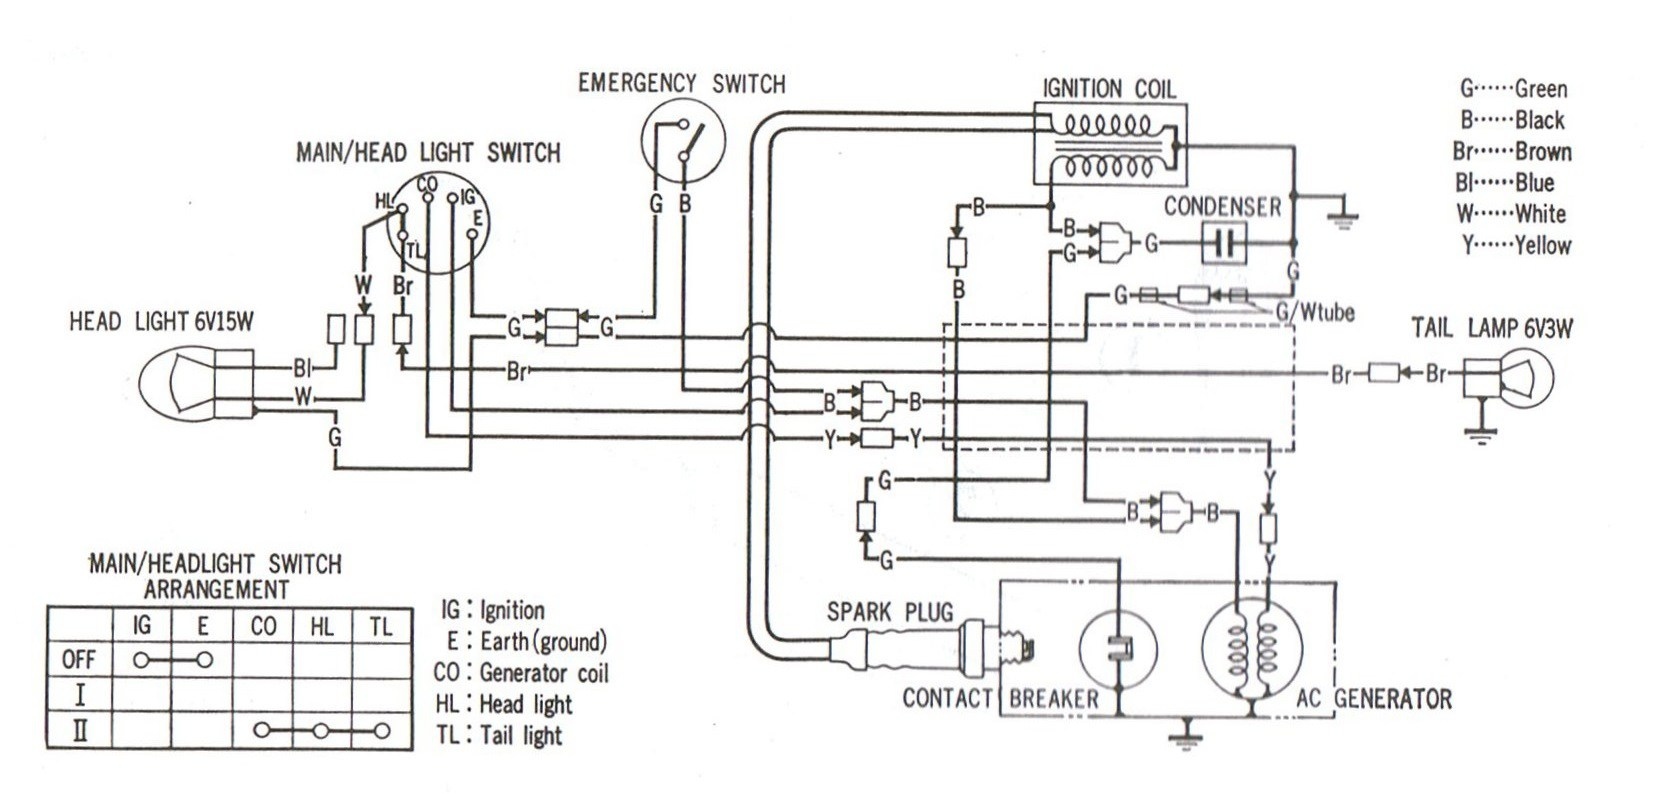 Honda Trx 90 Wiring Diagram - Wiring Diagram mere-location -  mere-location.erbapersa.it | Trx 90 Wiring Diagram |  | erbapersa.it